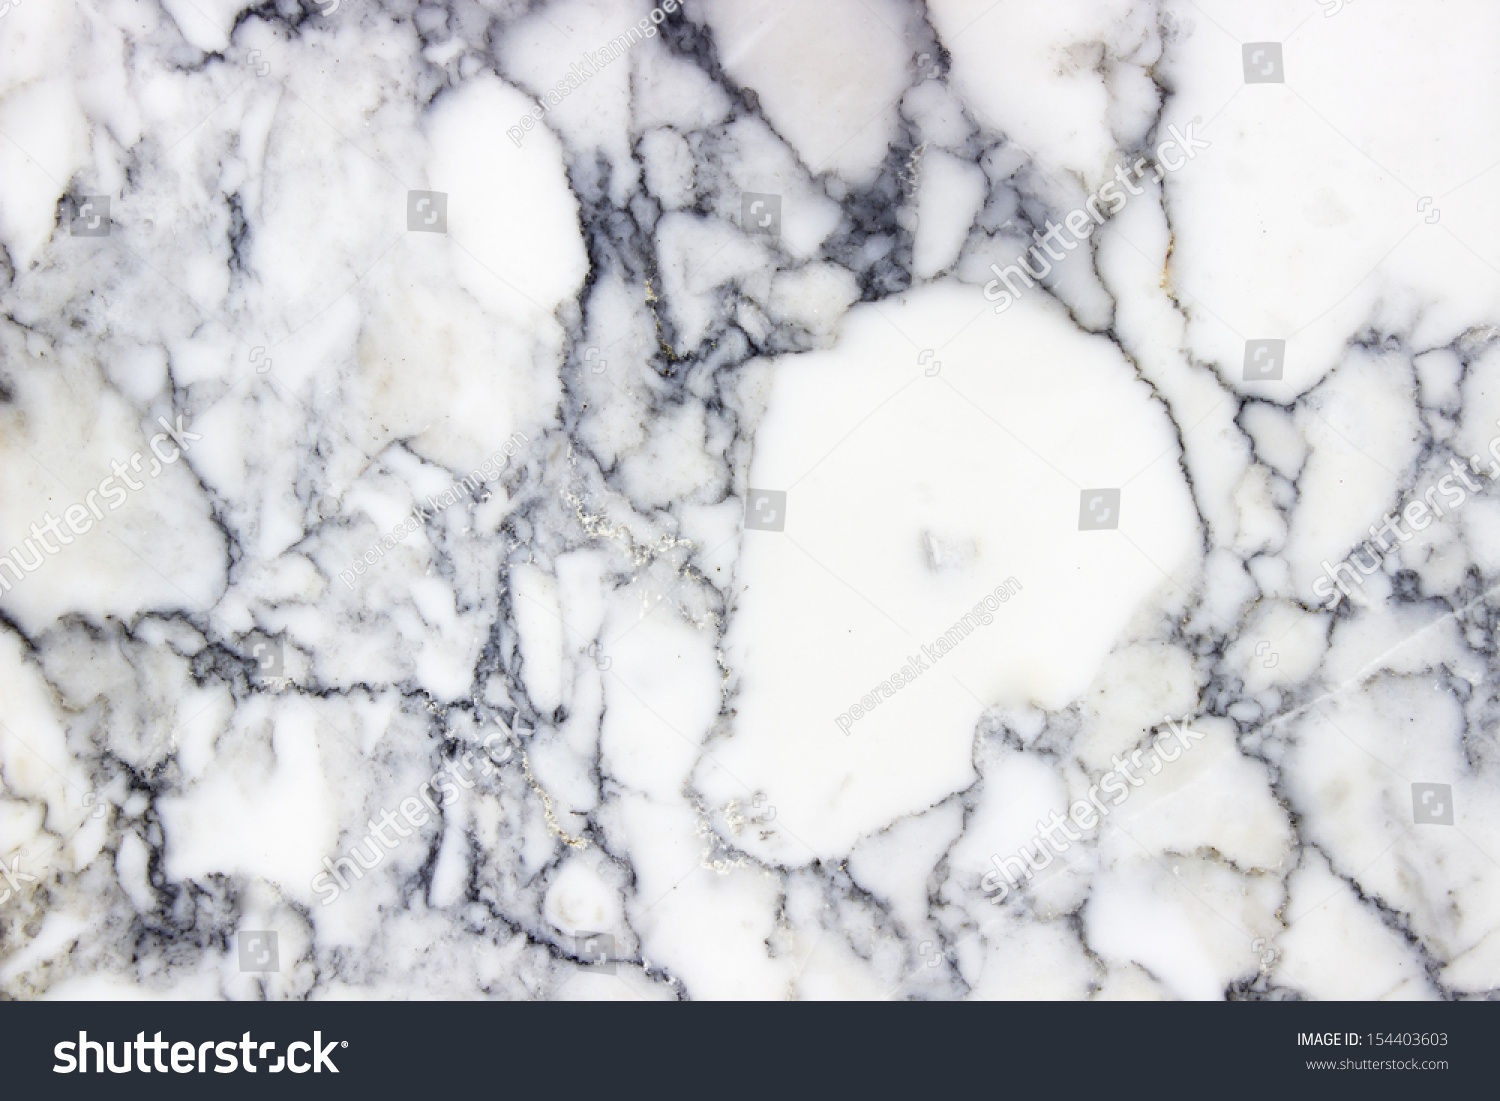 Marble amp Stone Texture Background Images amp Pictures